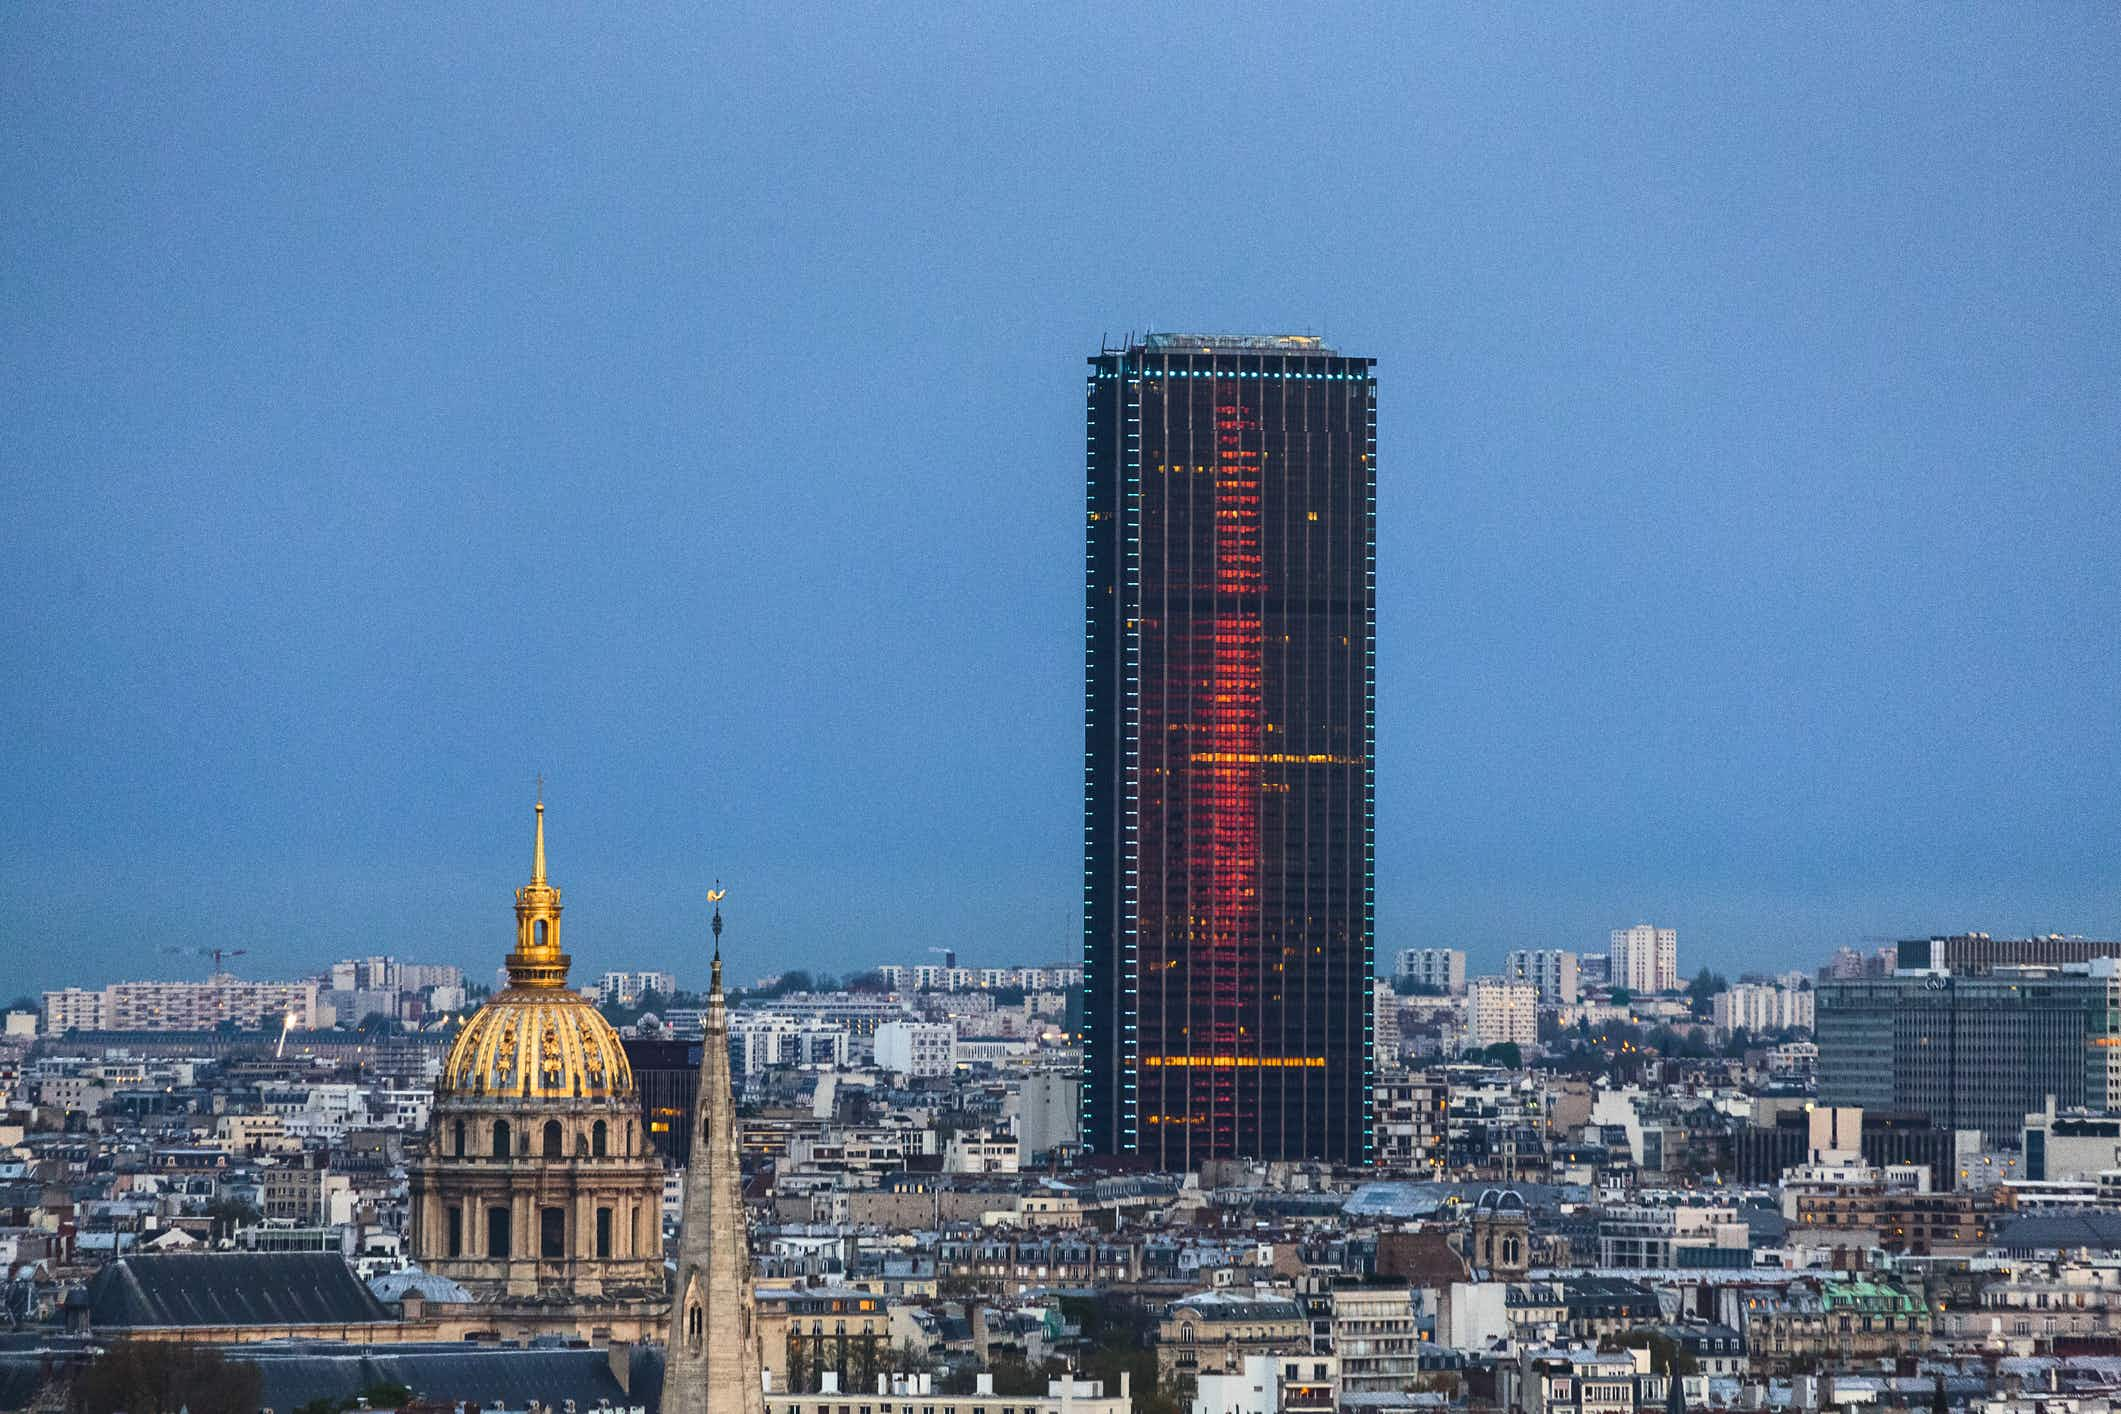 Paris' controversial skyscraper is getting a €300 million makeover which will make it even taller